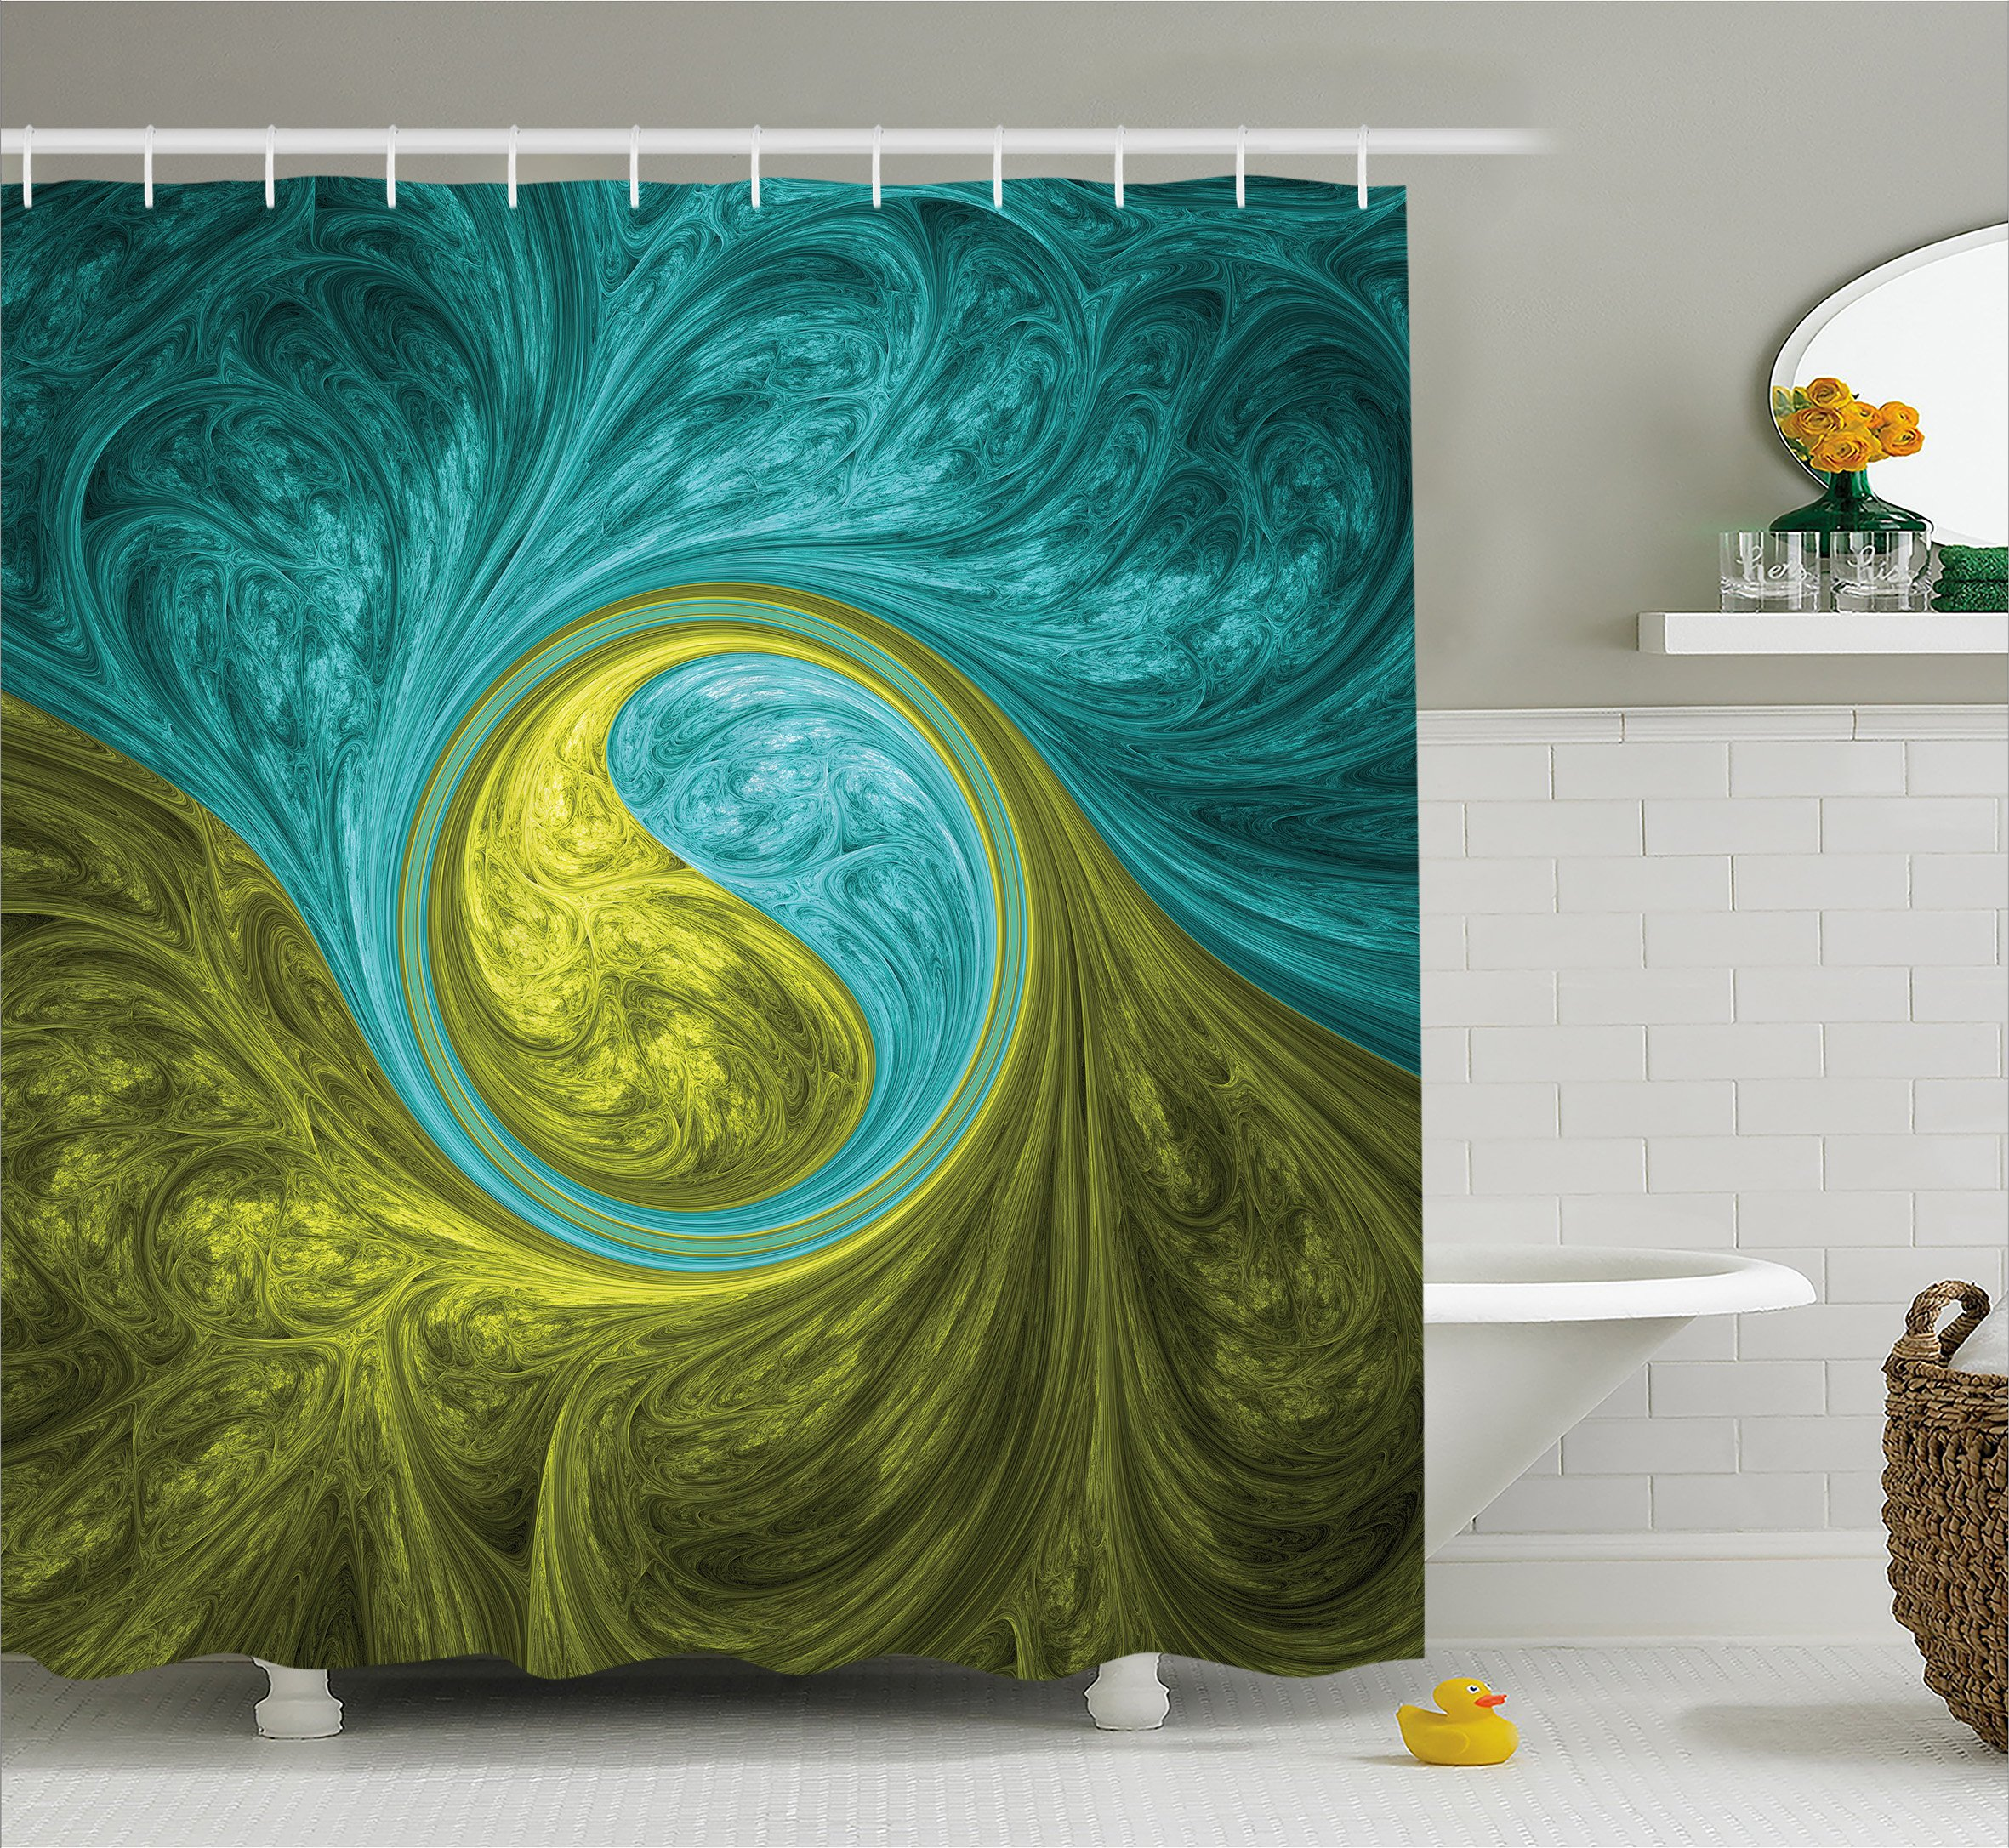 Ambesonne Spires Decor Shower Curtain, Zen Eastern Spiral Psychedelic Figure with Sunny Side Asian Ethnic Decor, Fabric Bathroom Decor Set with Hooks, 70 inches, Khaki and Teal